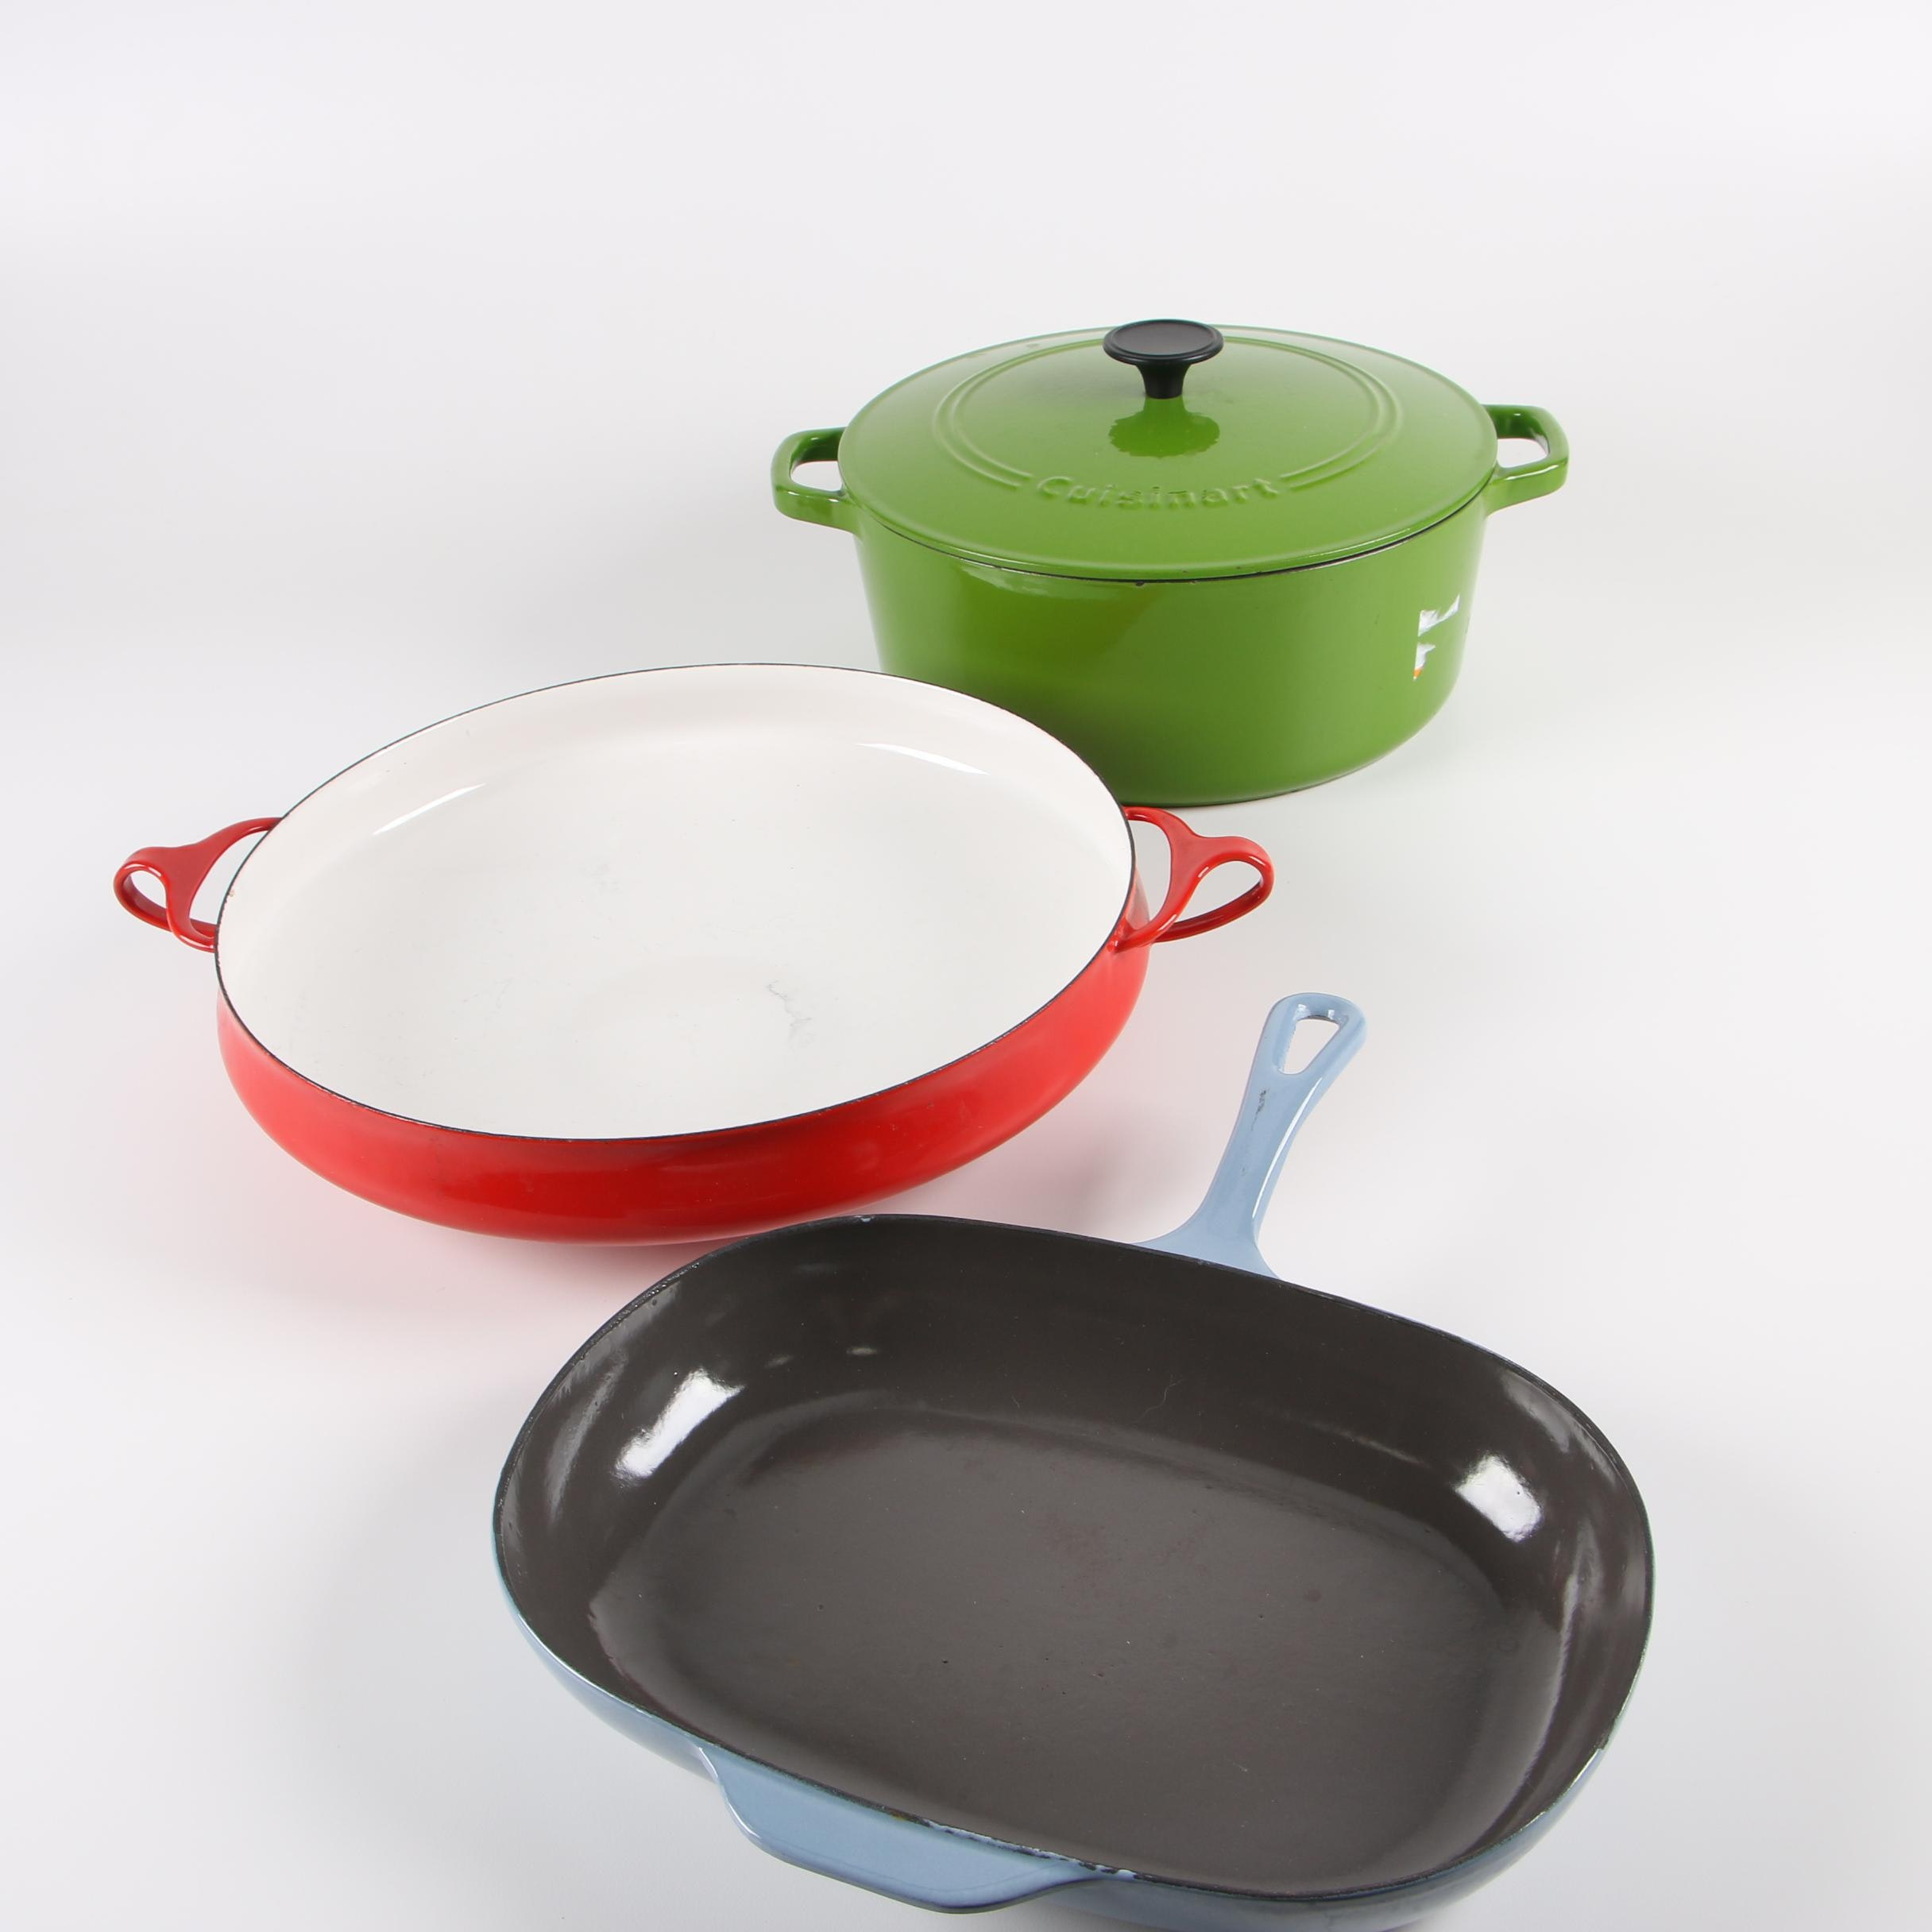 Enameled Cast Iron Cookware featuring Dansk and Cuisinart